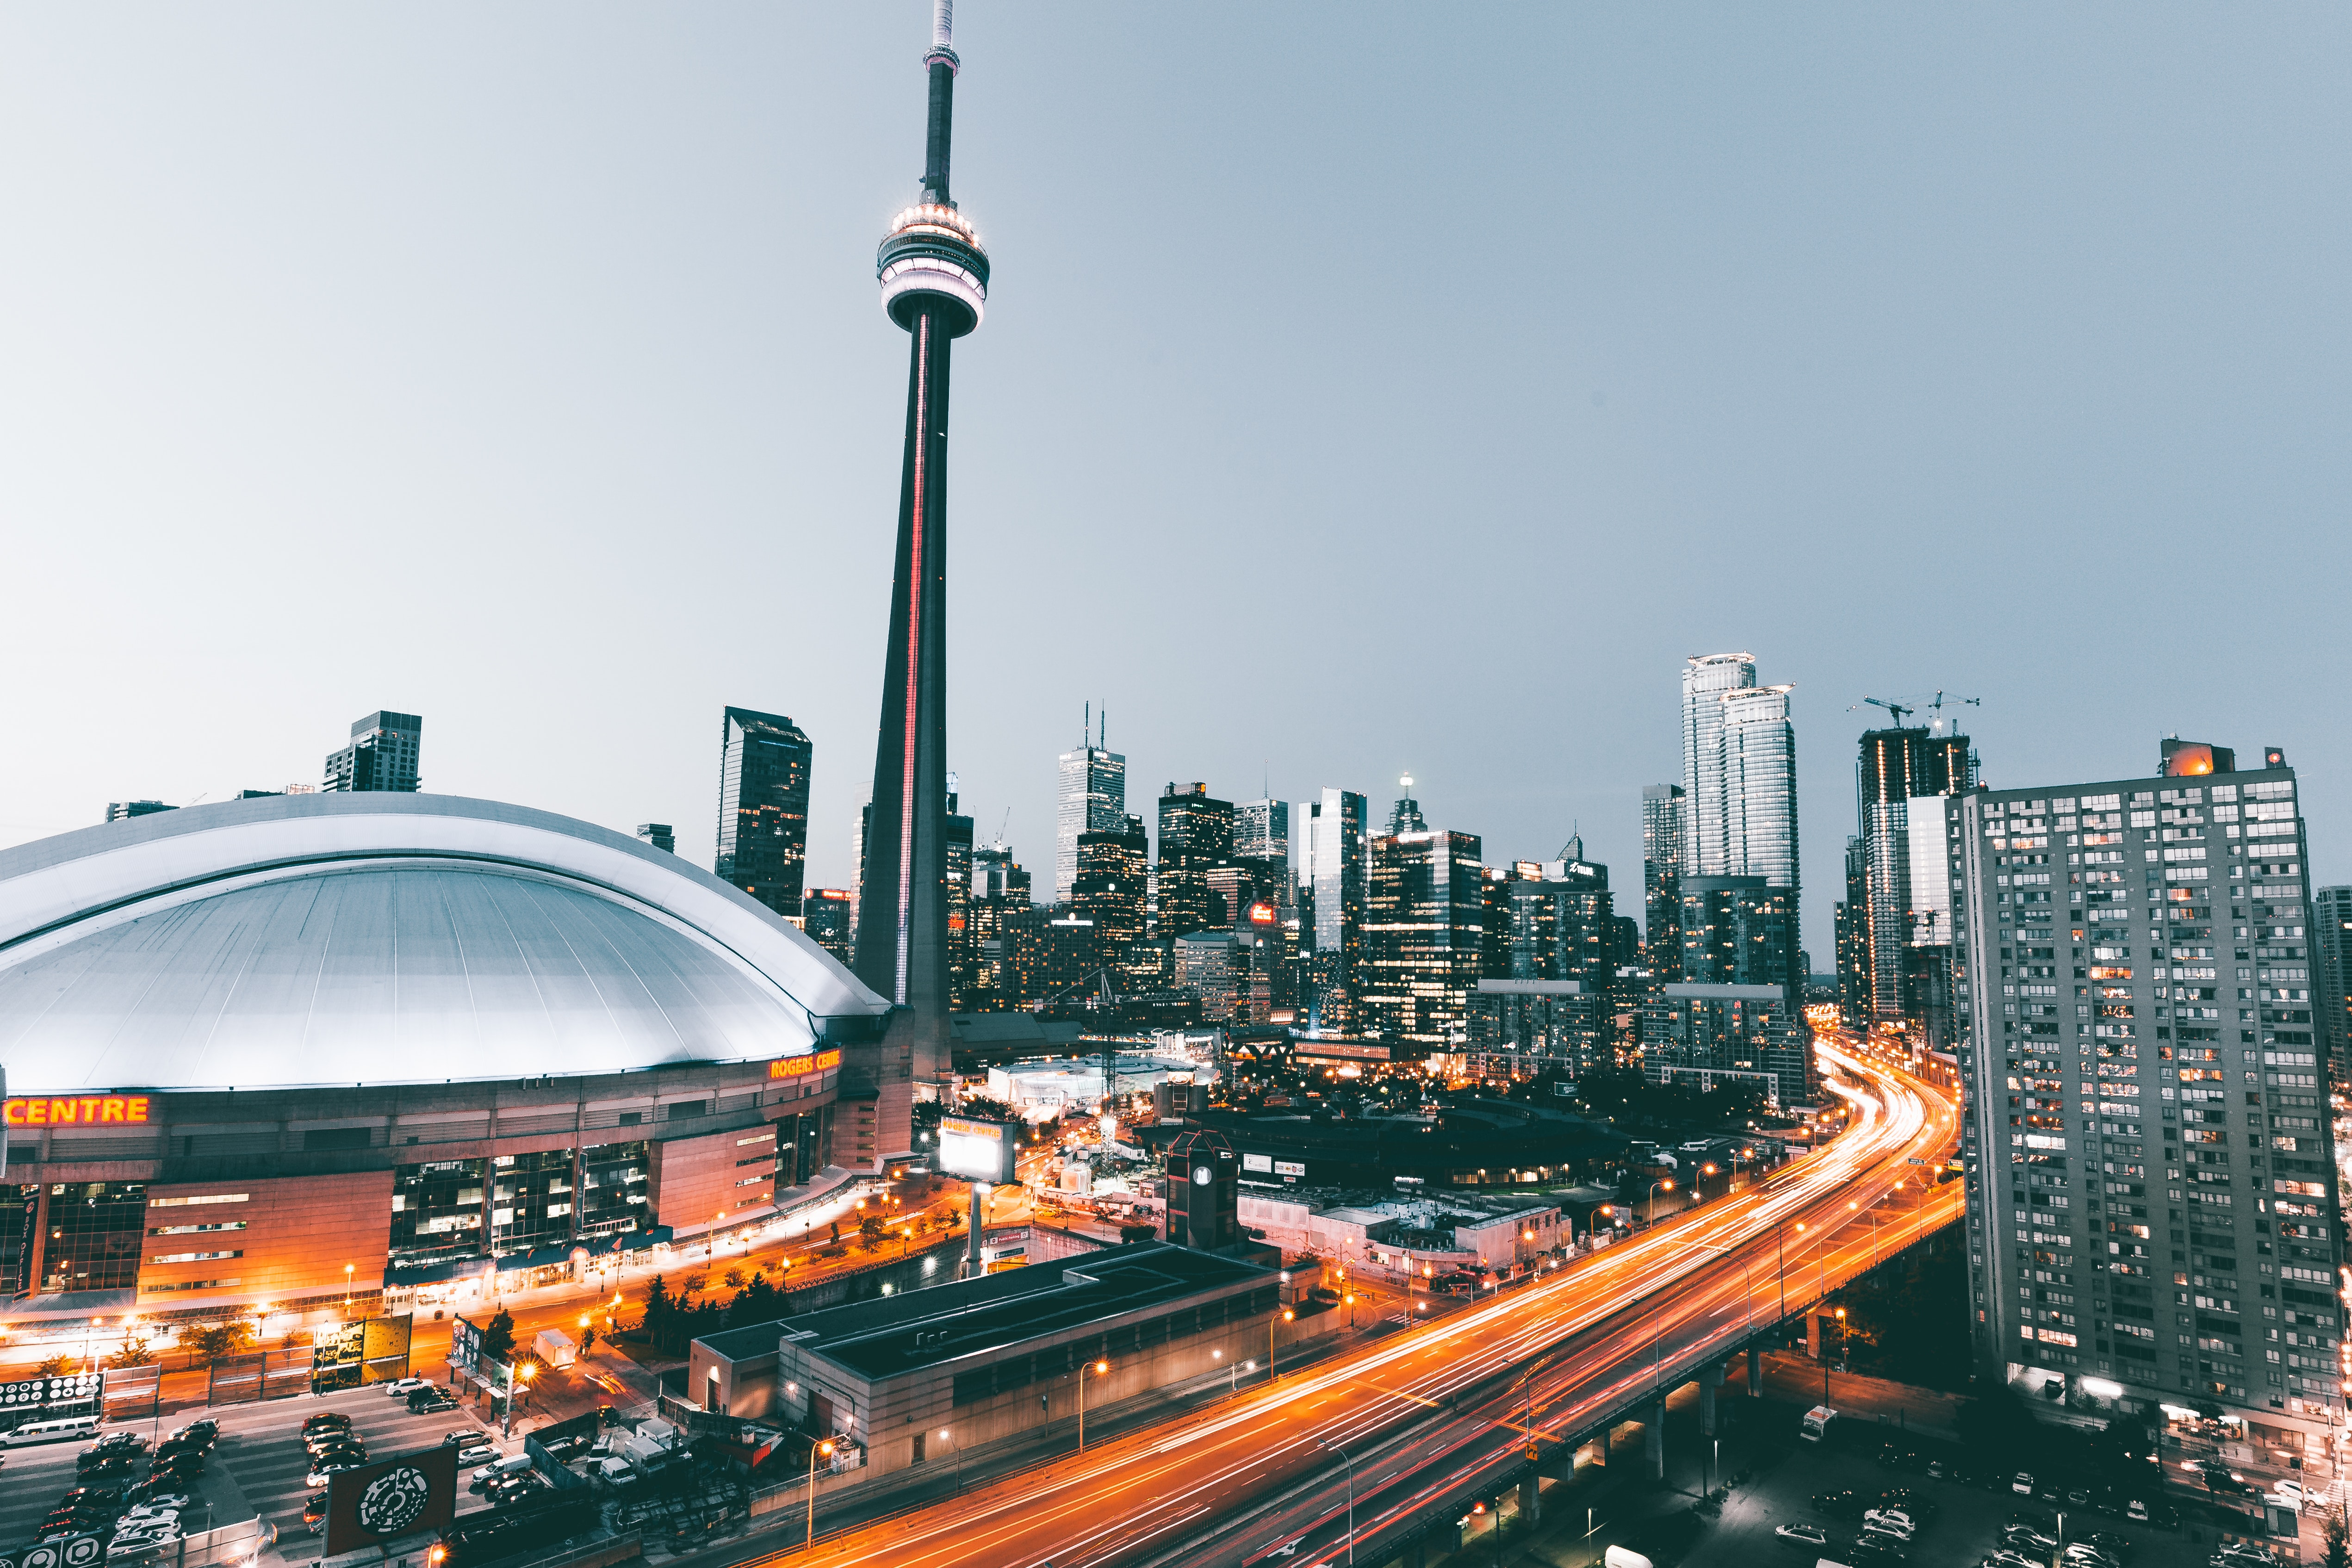 The-Top-20-Corporate-Event-Venues-in-Toronto-featured-image